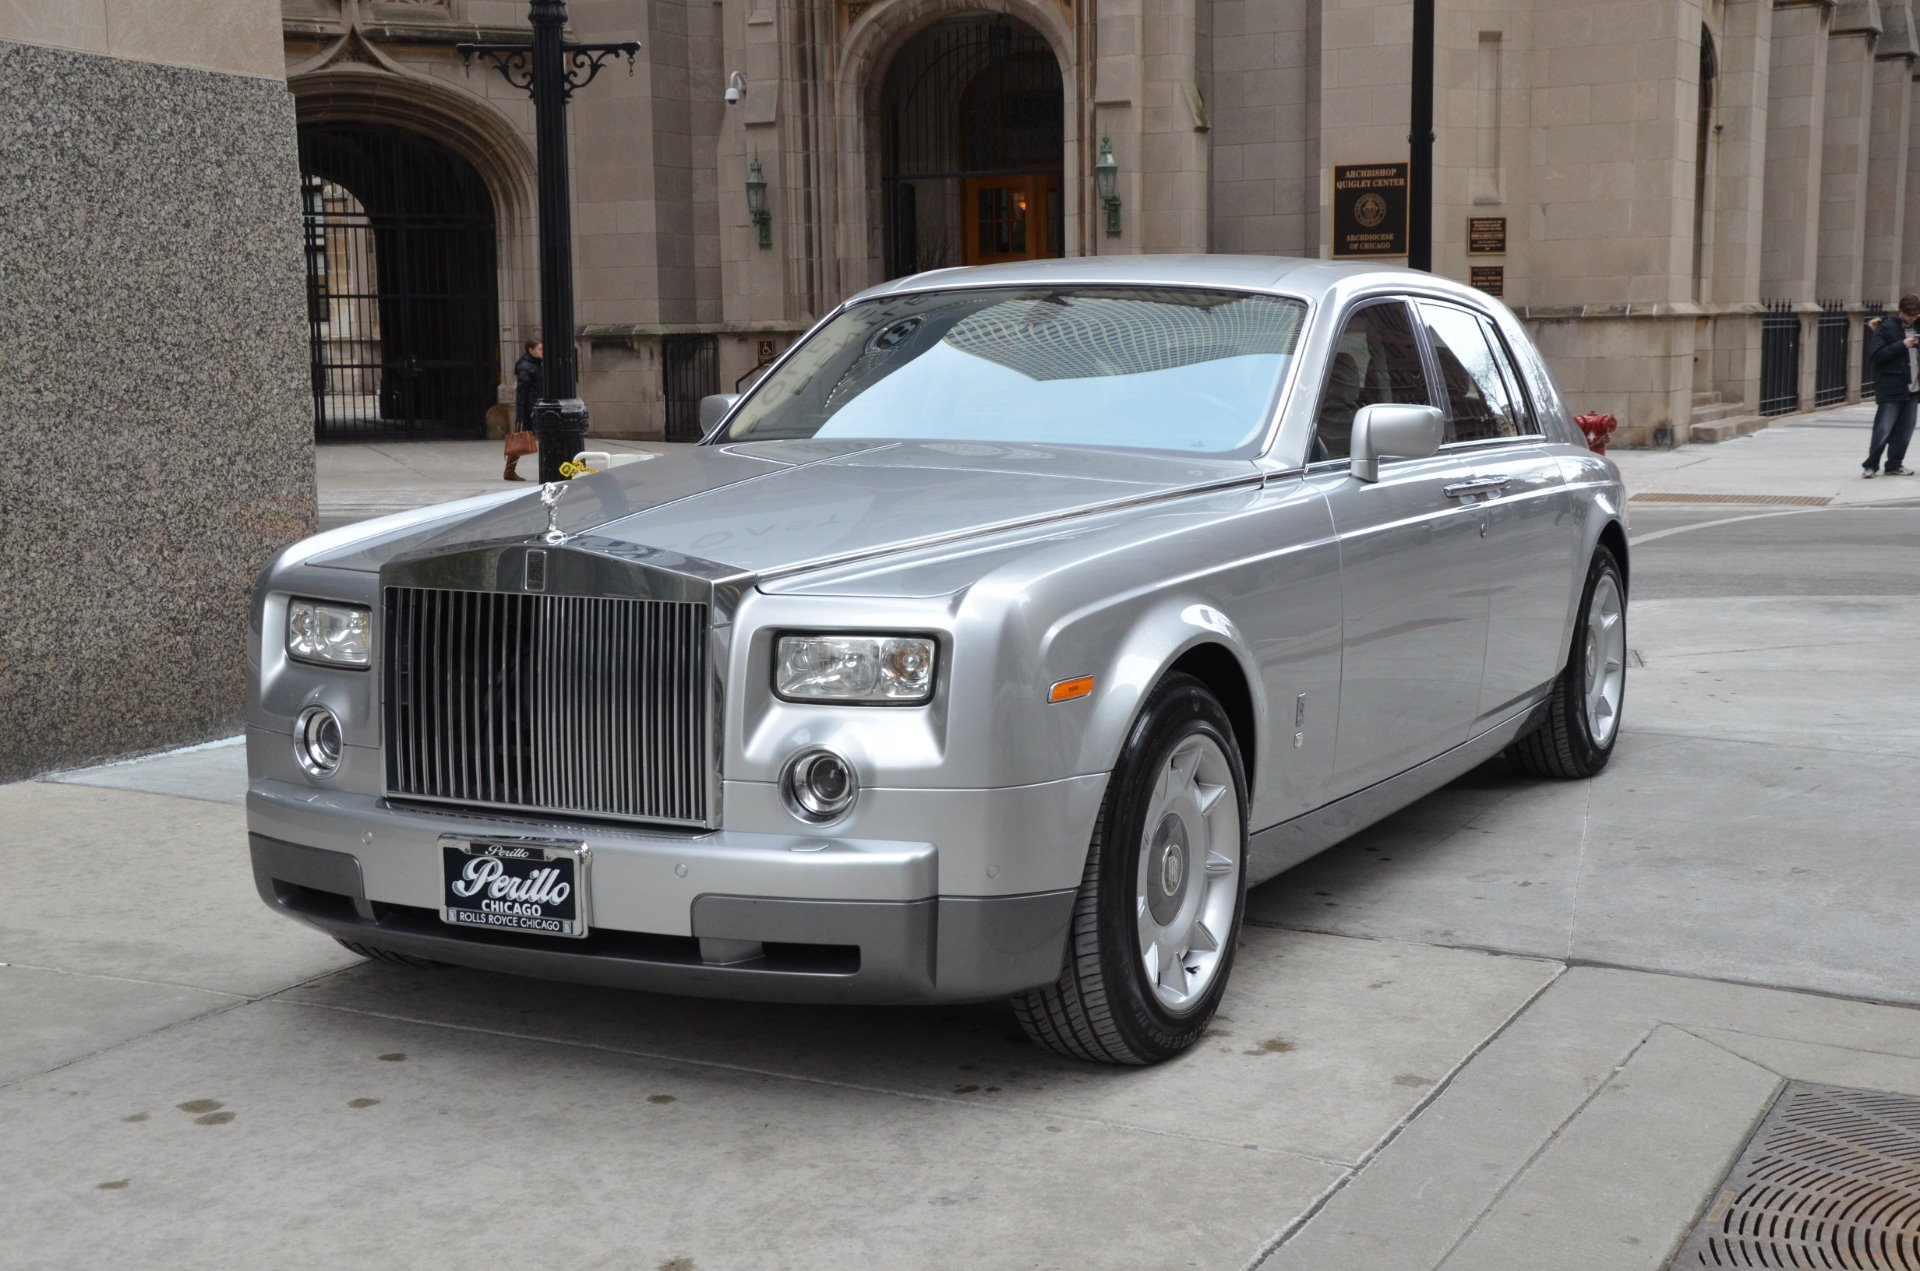 2004 Rolls-Royce Phantom Stock # GC-ROLAND151 for sale ...